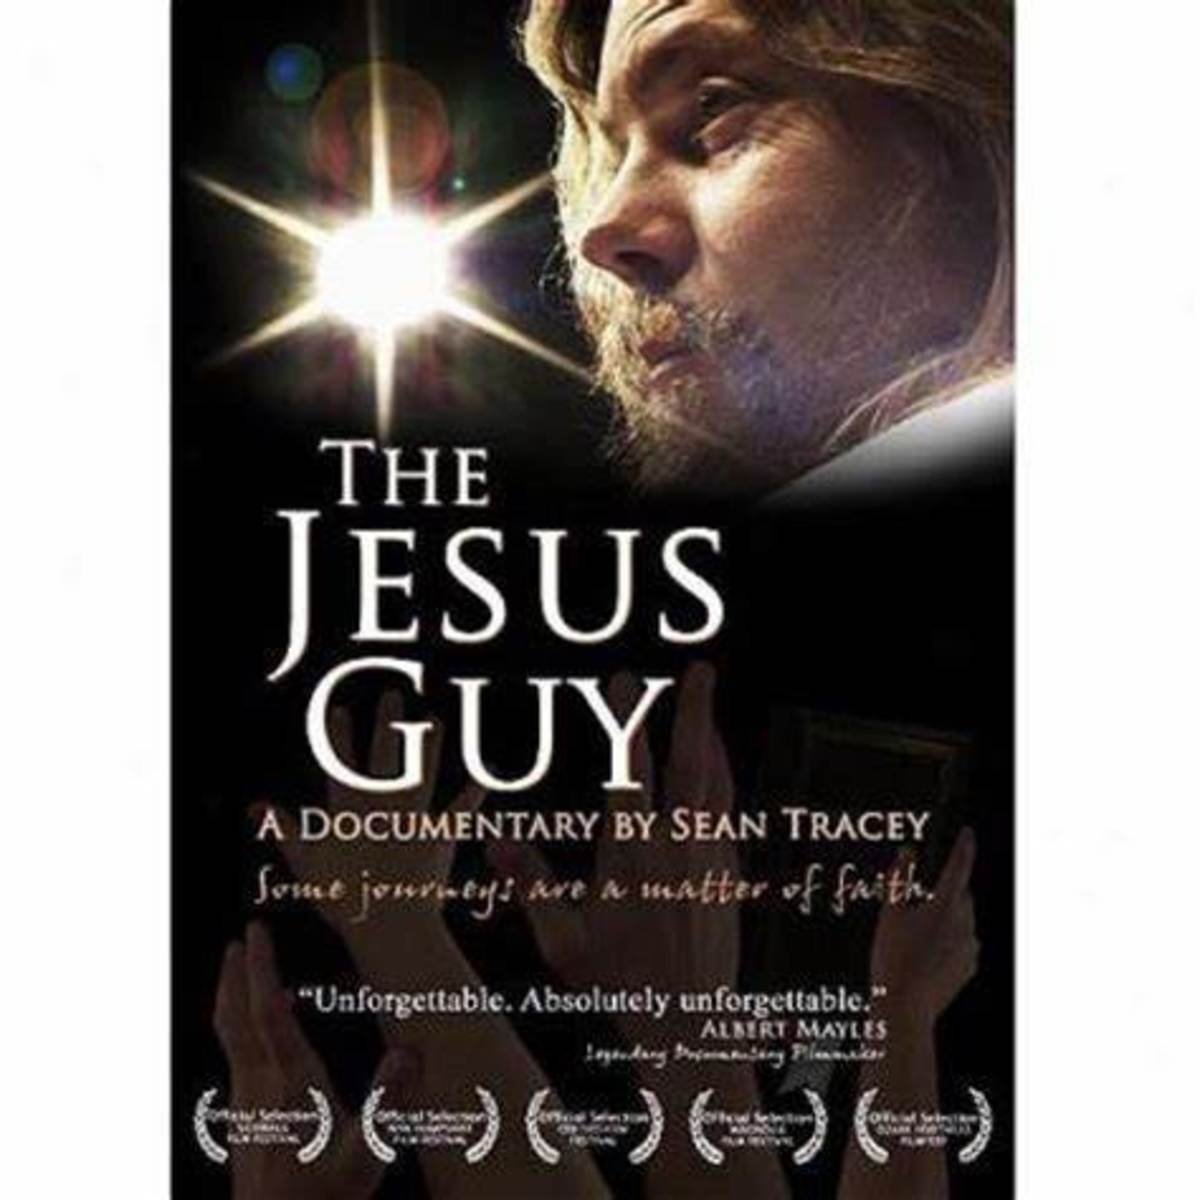 Poster for The Jesus Guy documentary